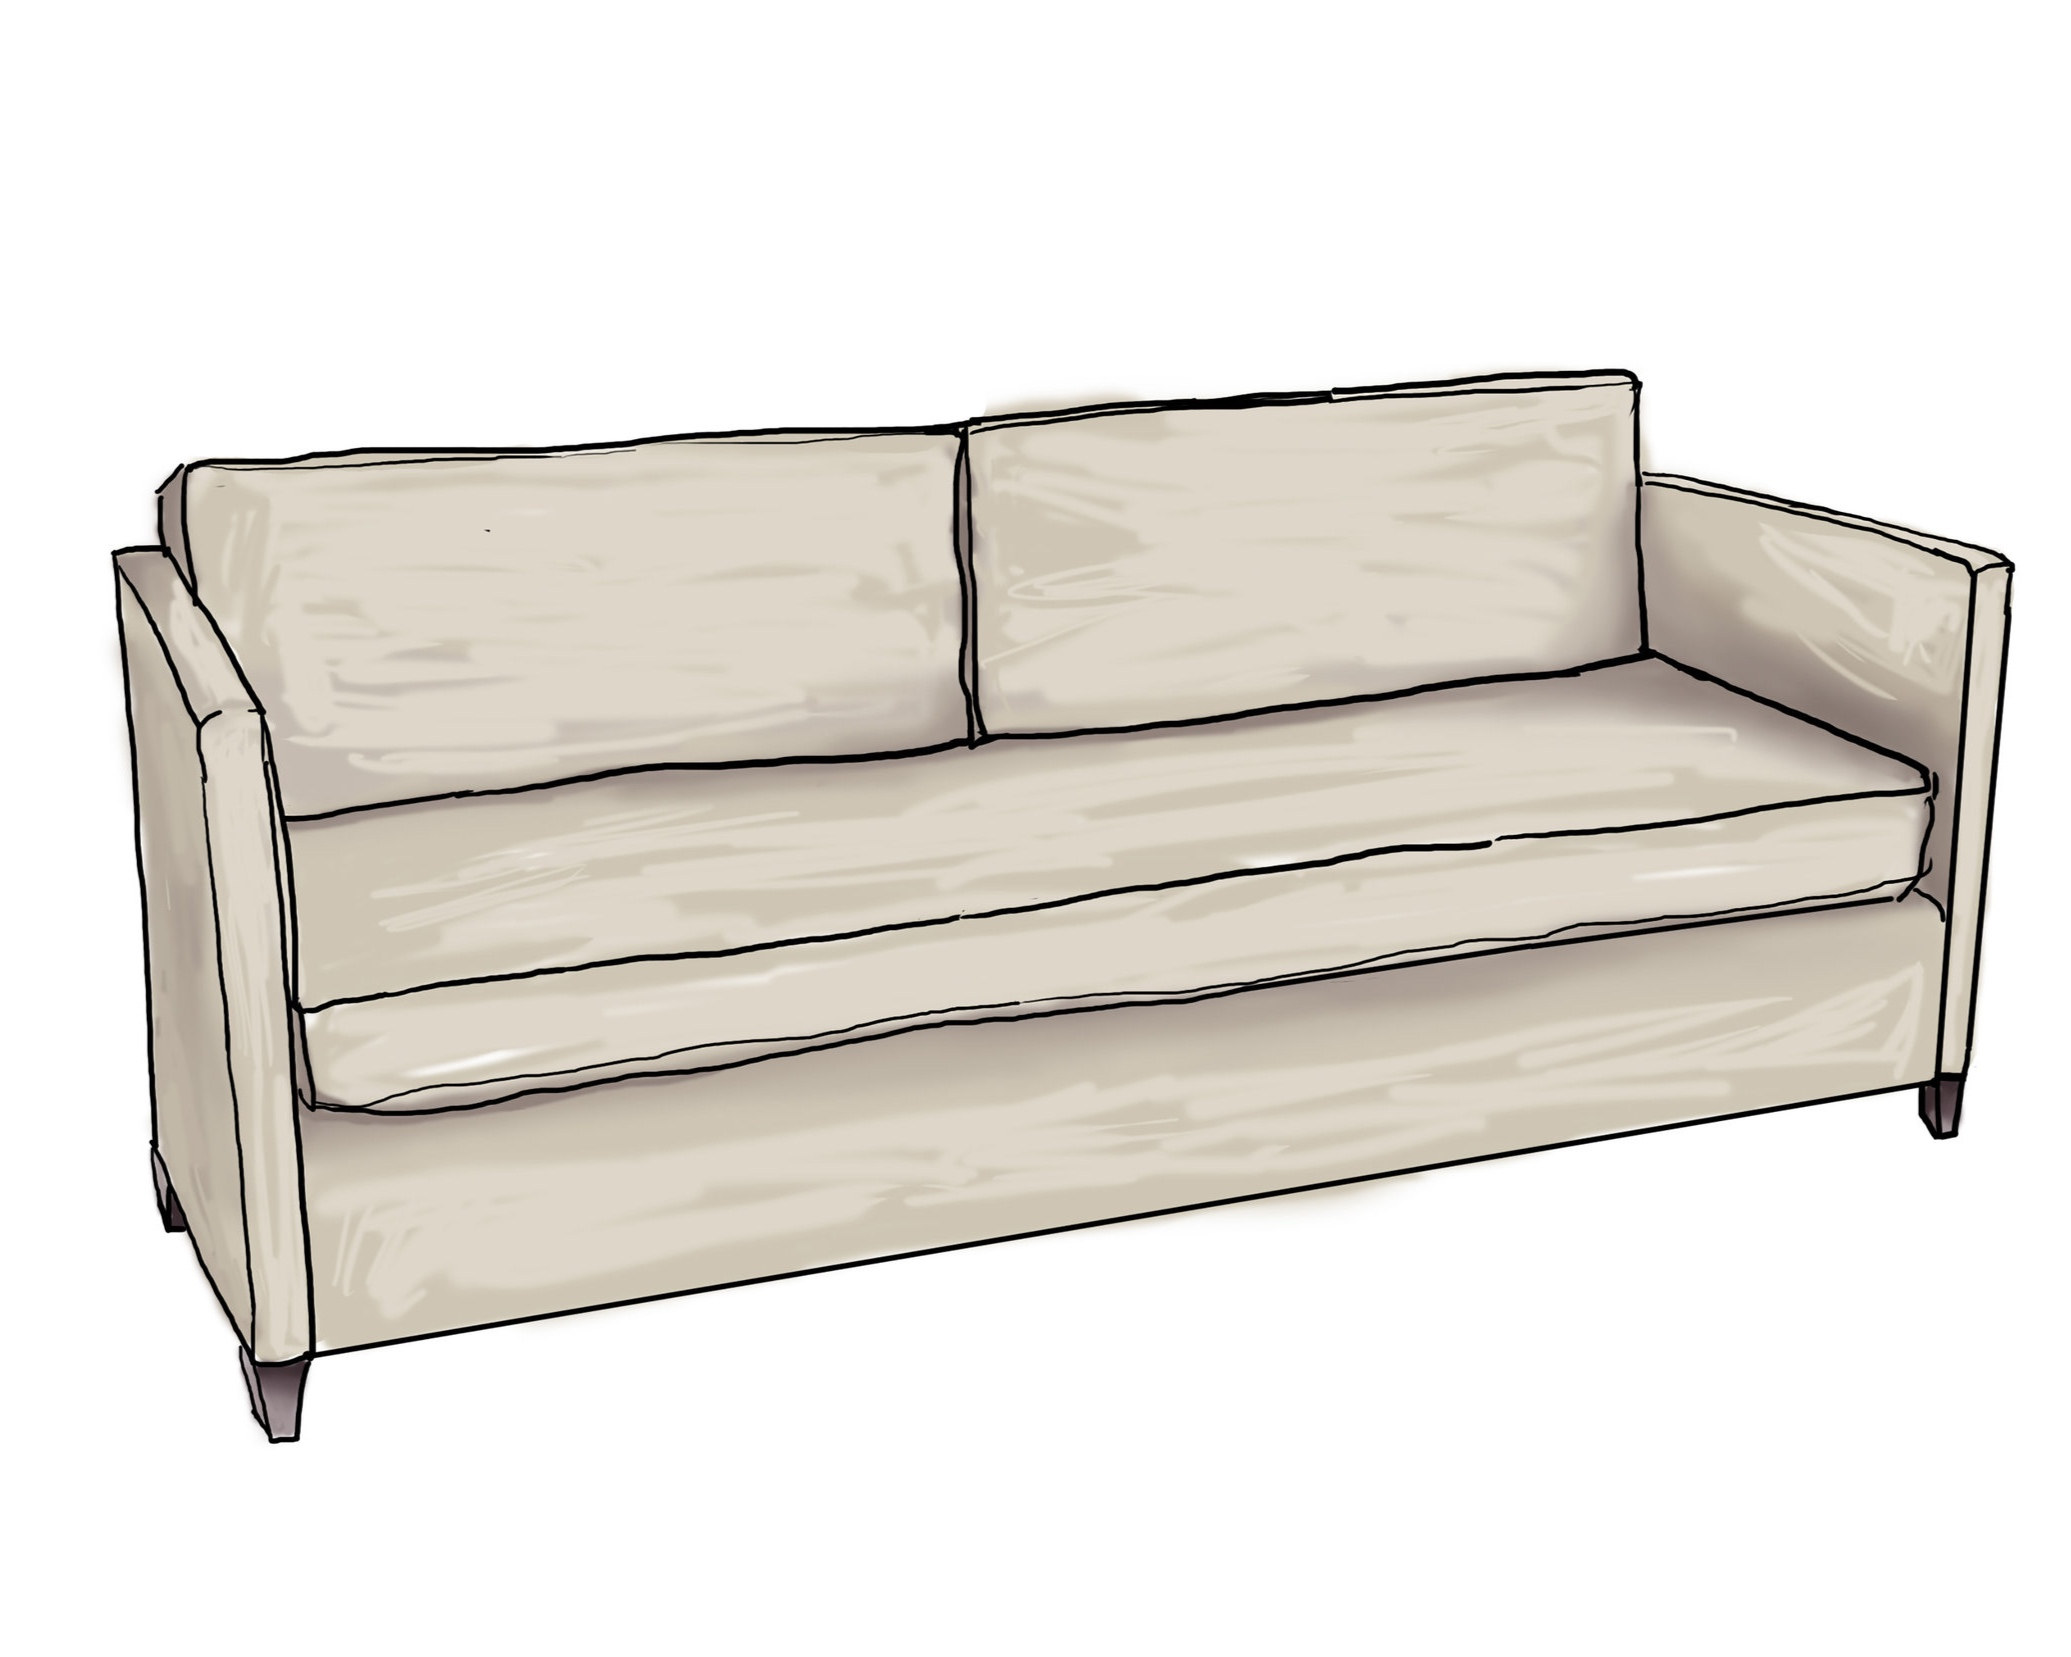 TCS 567-1 Seattle Sofa warm beige-2.jpg